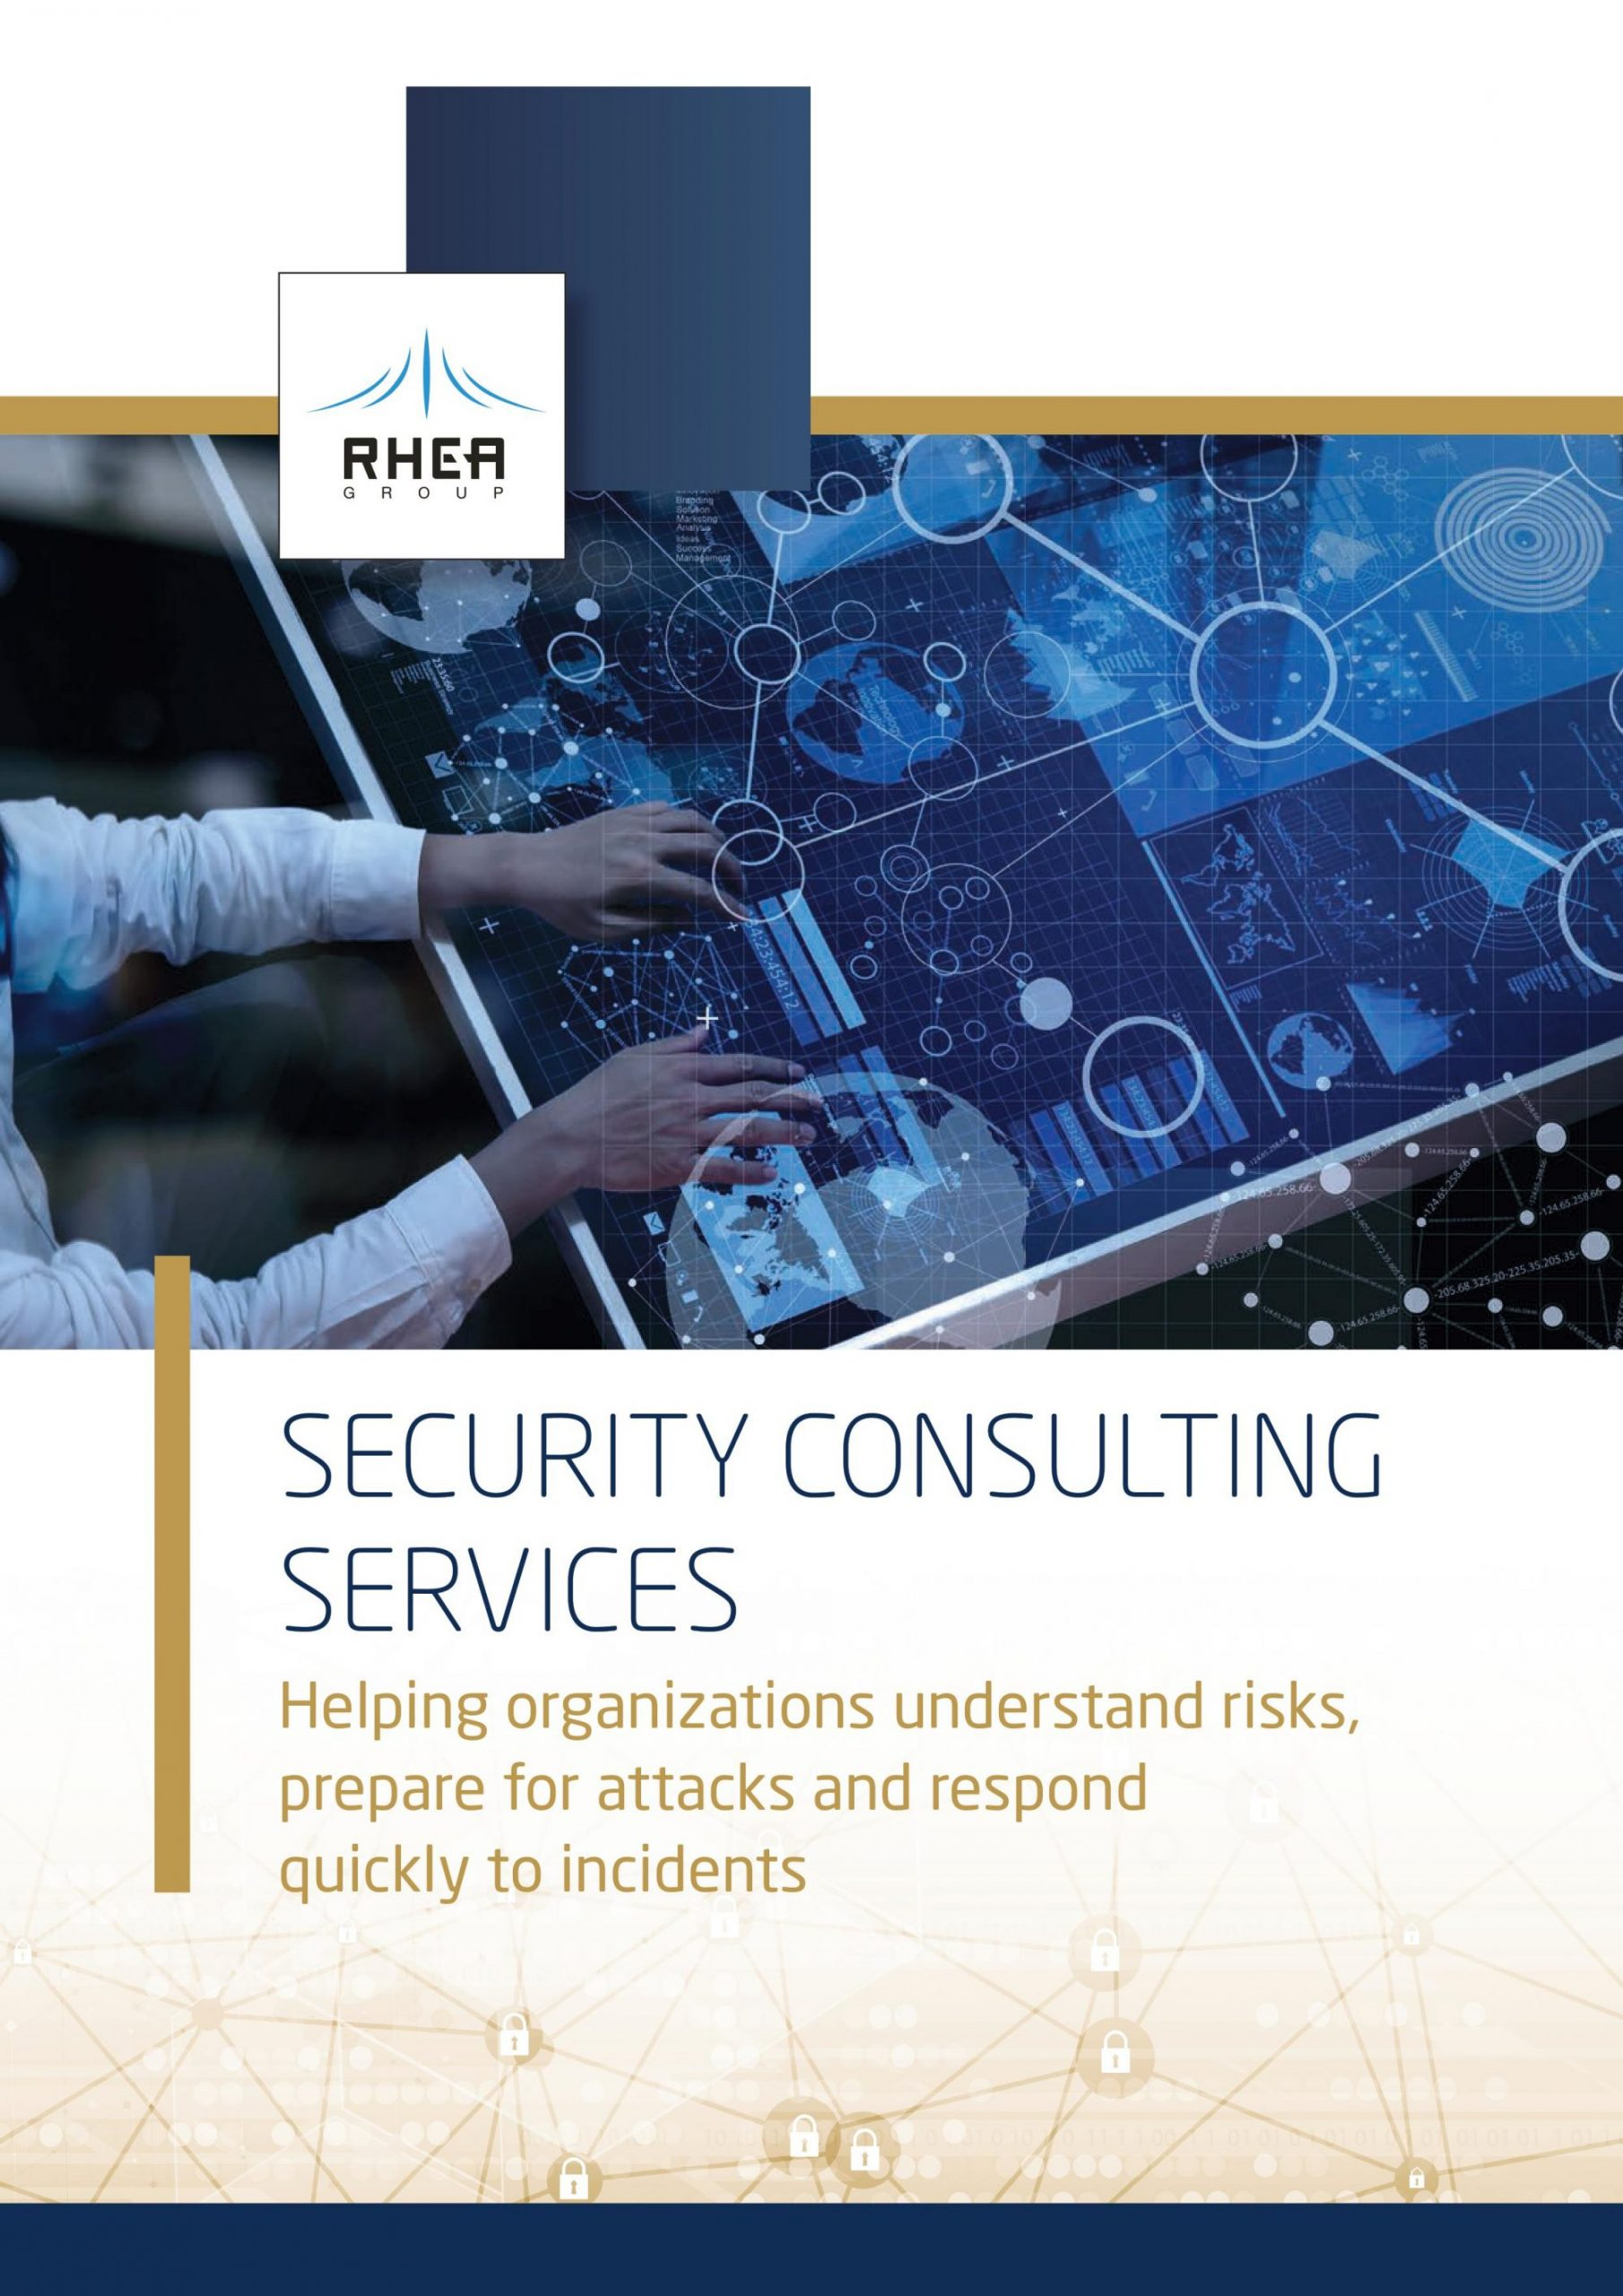 RHEA Group Security Consulting Services brochure cover